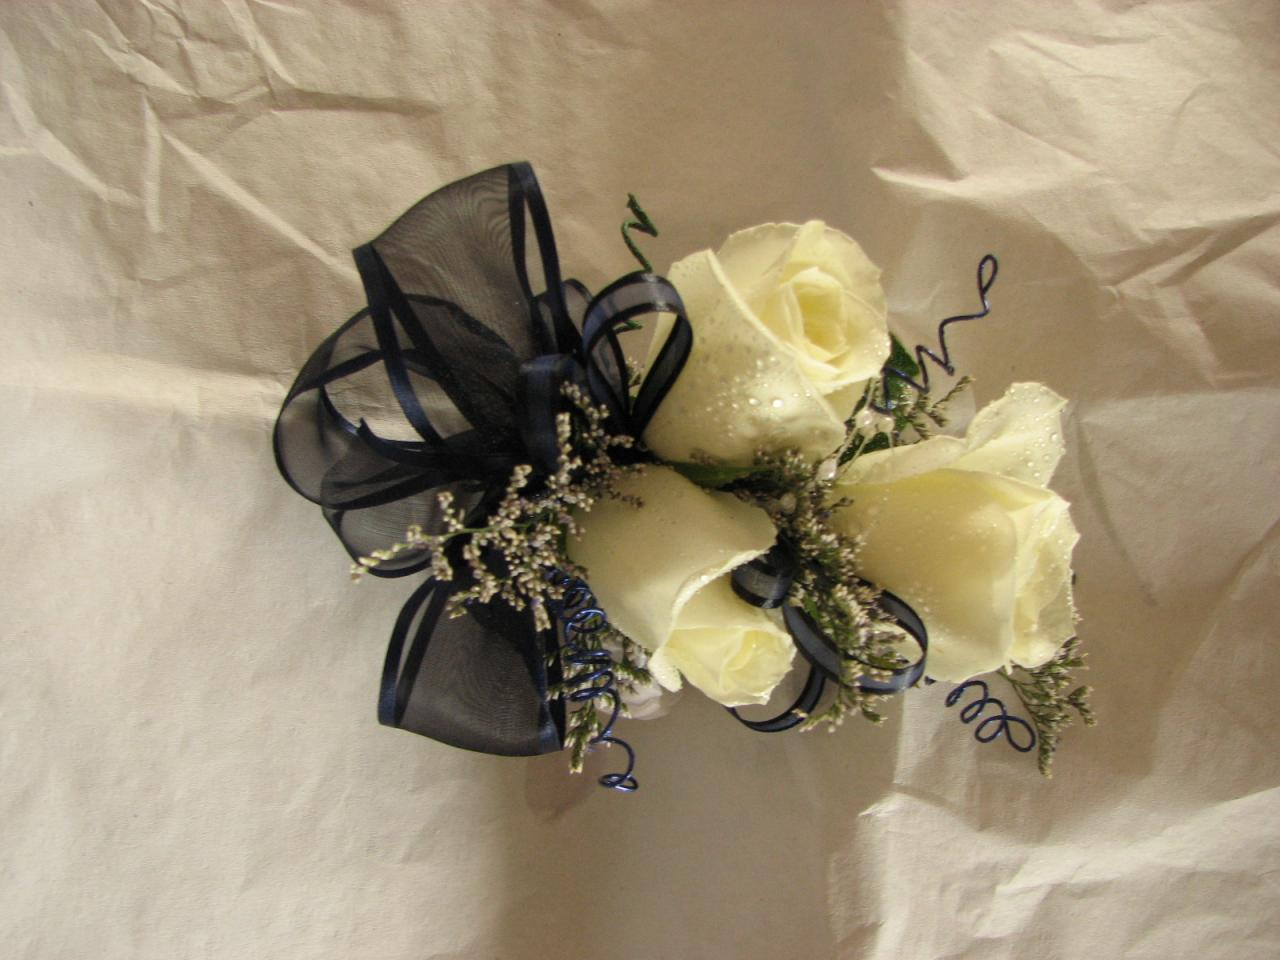 Bouquets & Balloons - Prom flowers Portland, Wedding flowers ...